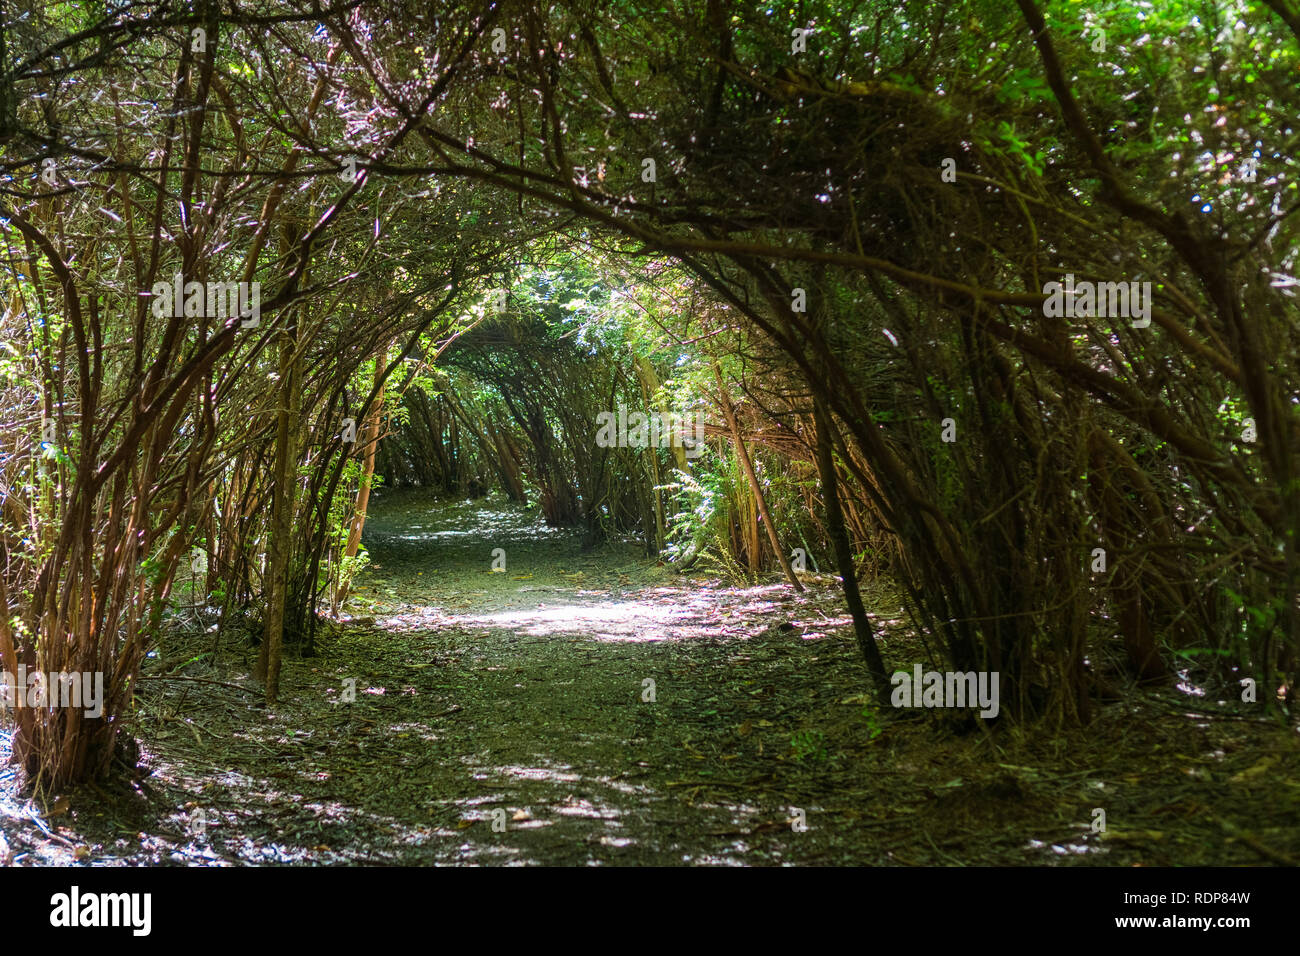 Tunnel Trail, South Slough National Estuarine Research Reserve, Coos Bay, Oregon - Stock Image